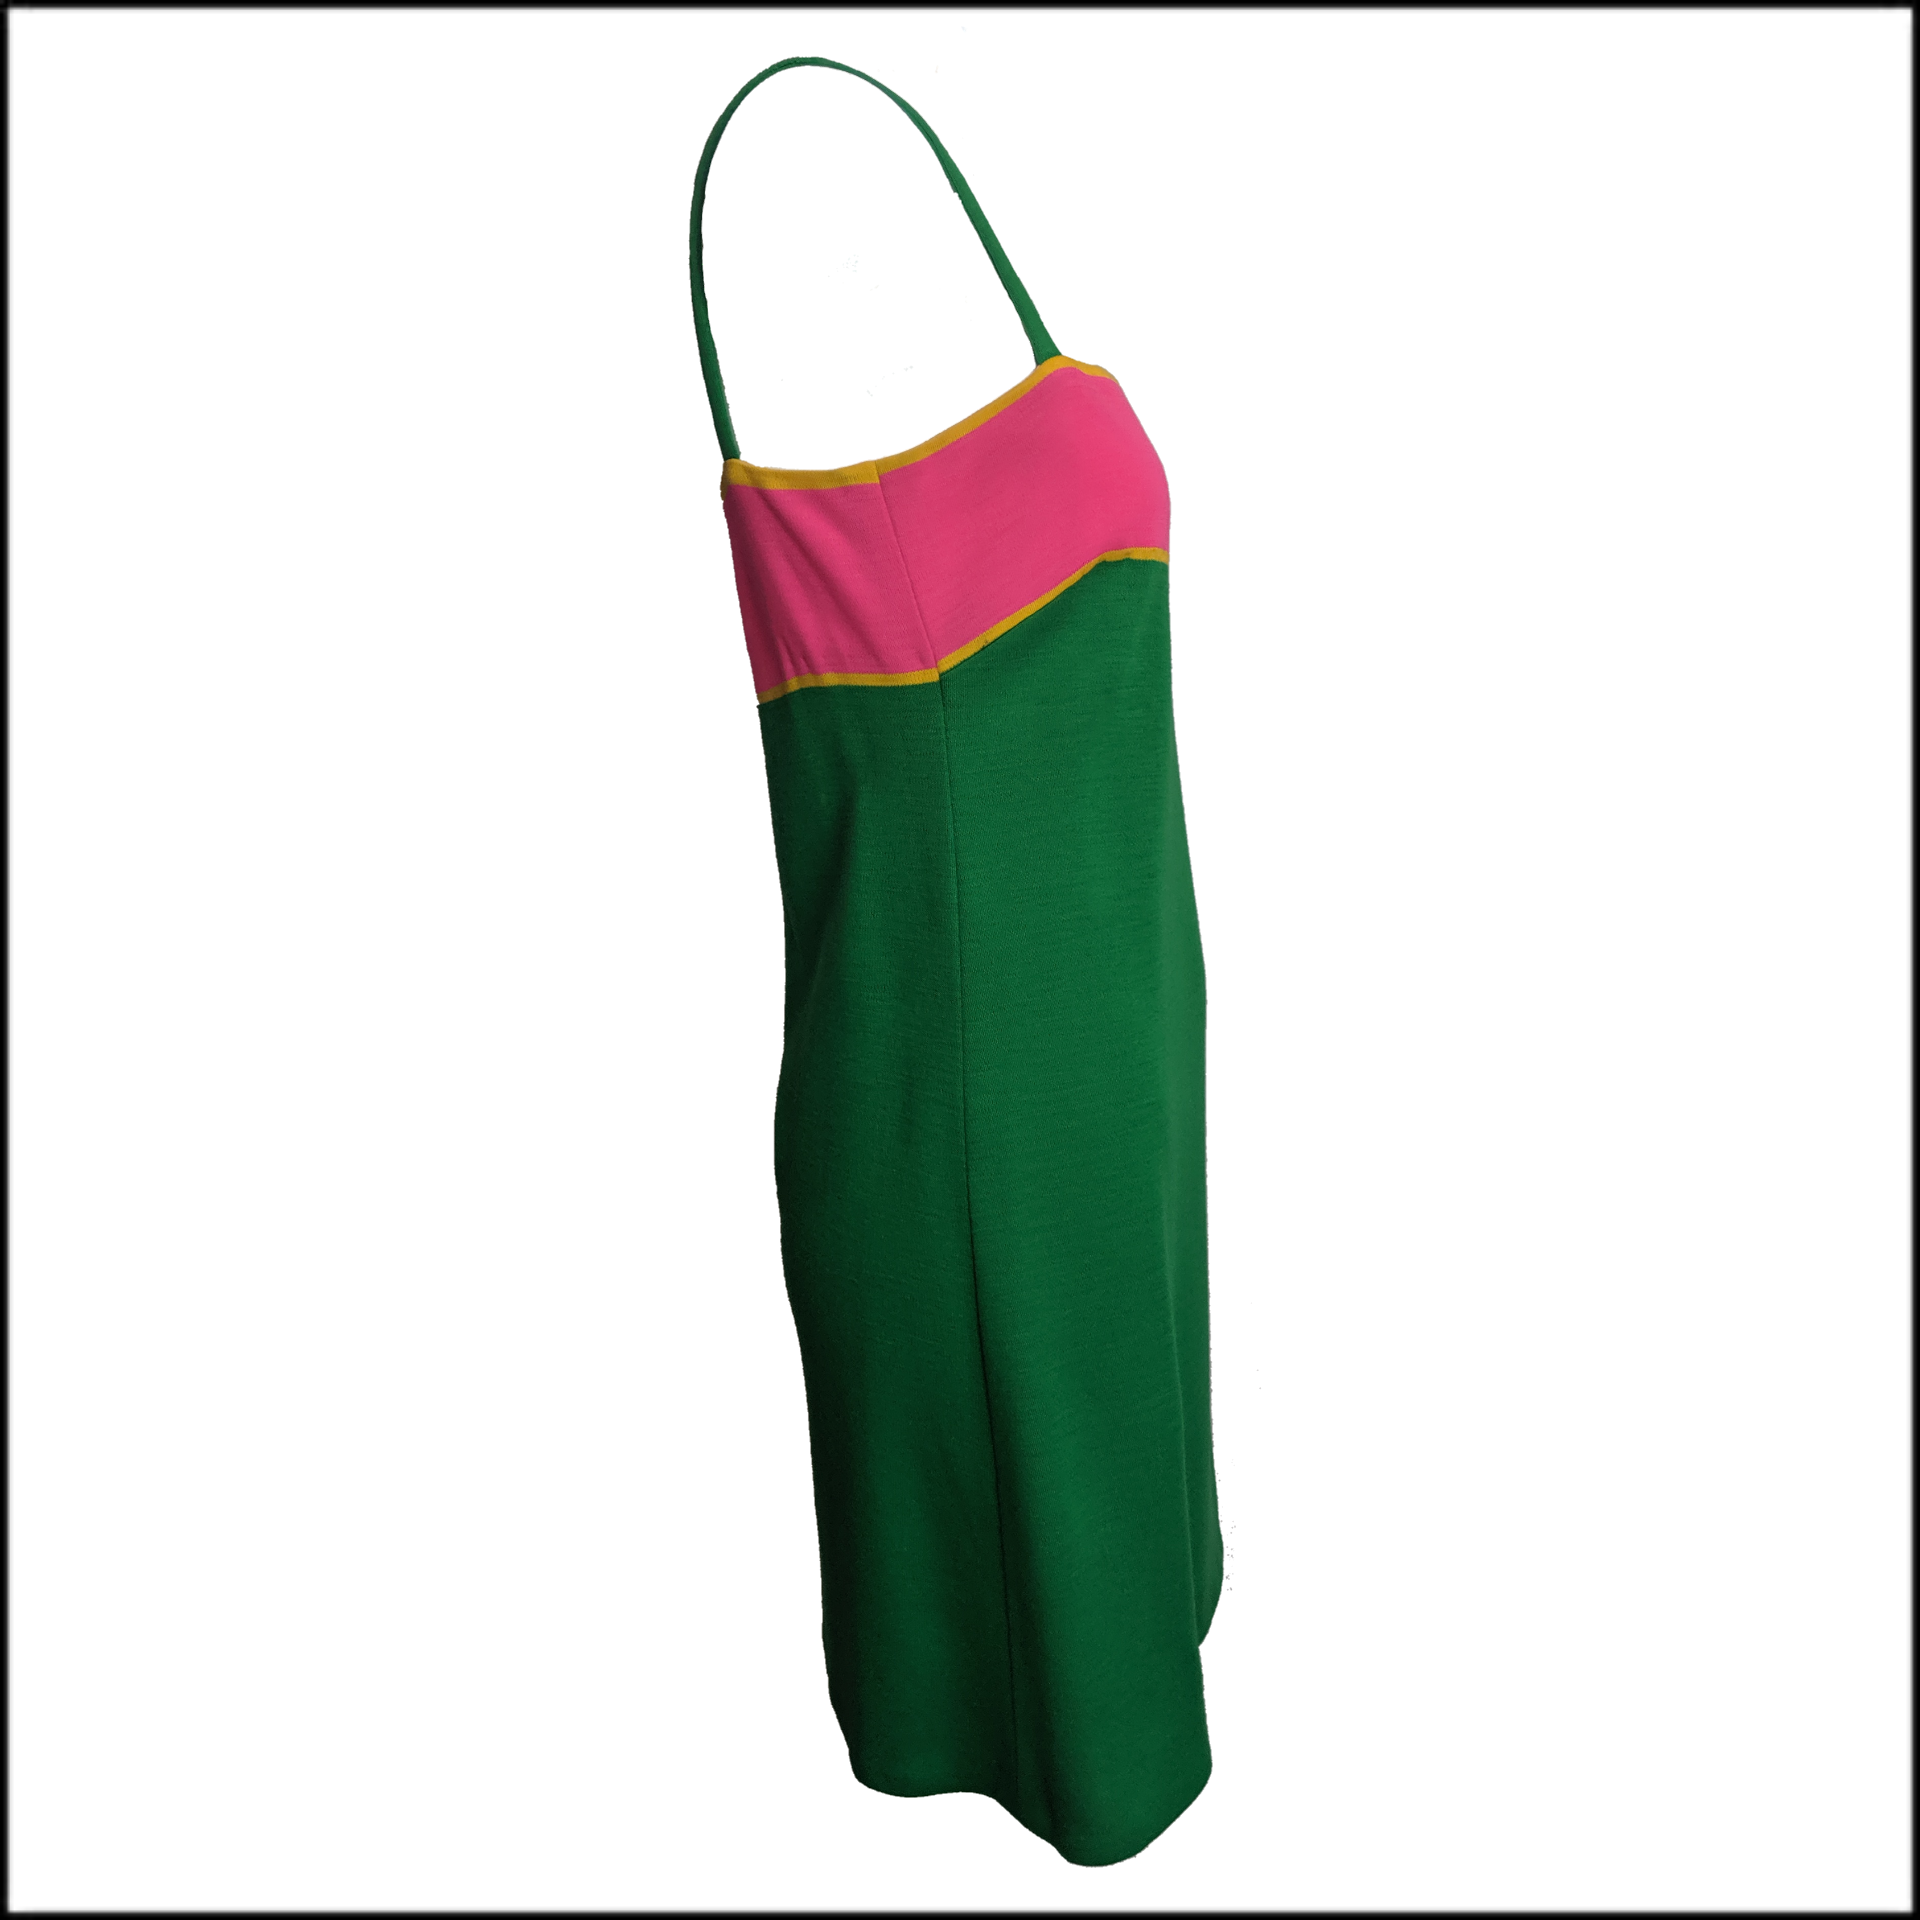 Paraphernalia 60s Kelly Green and Hot Pink Jersey Dress 2 of 6